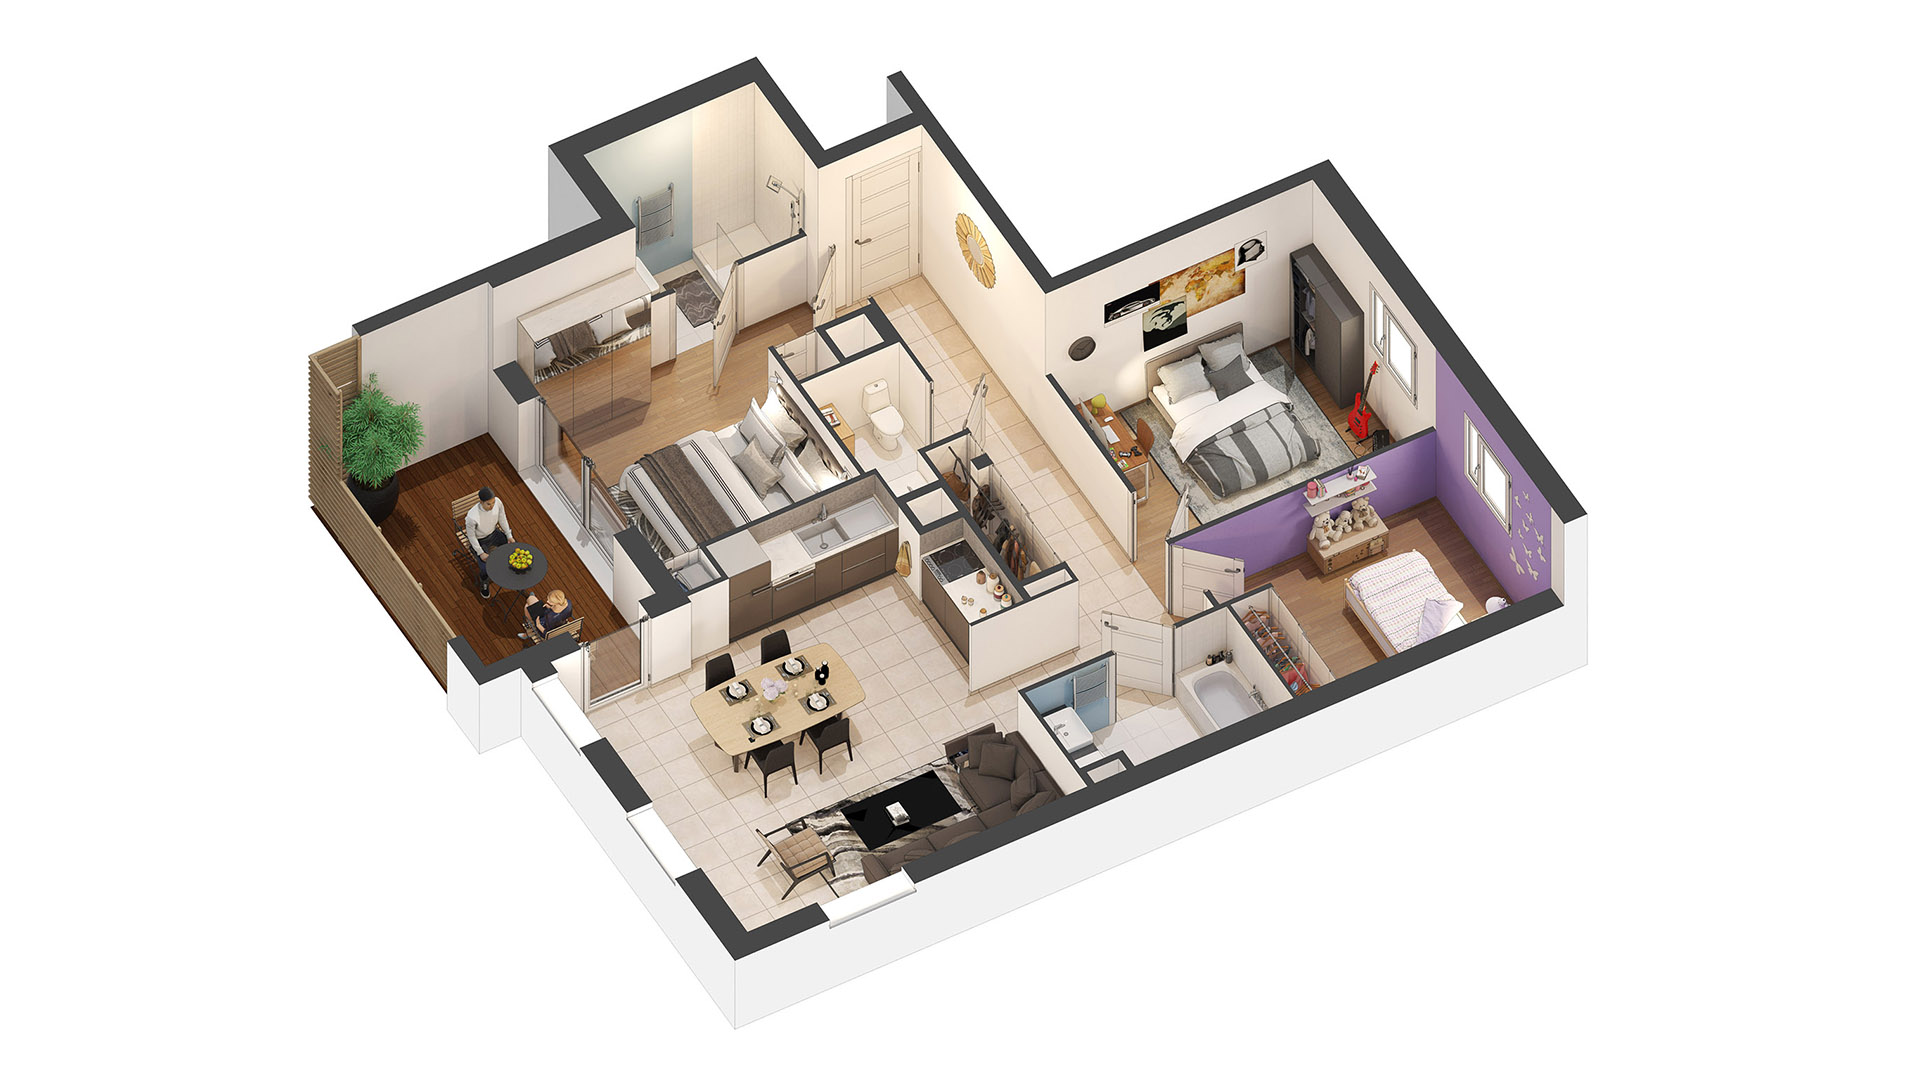 Plan d'appartement en 3D - Architecte 3D